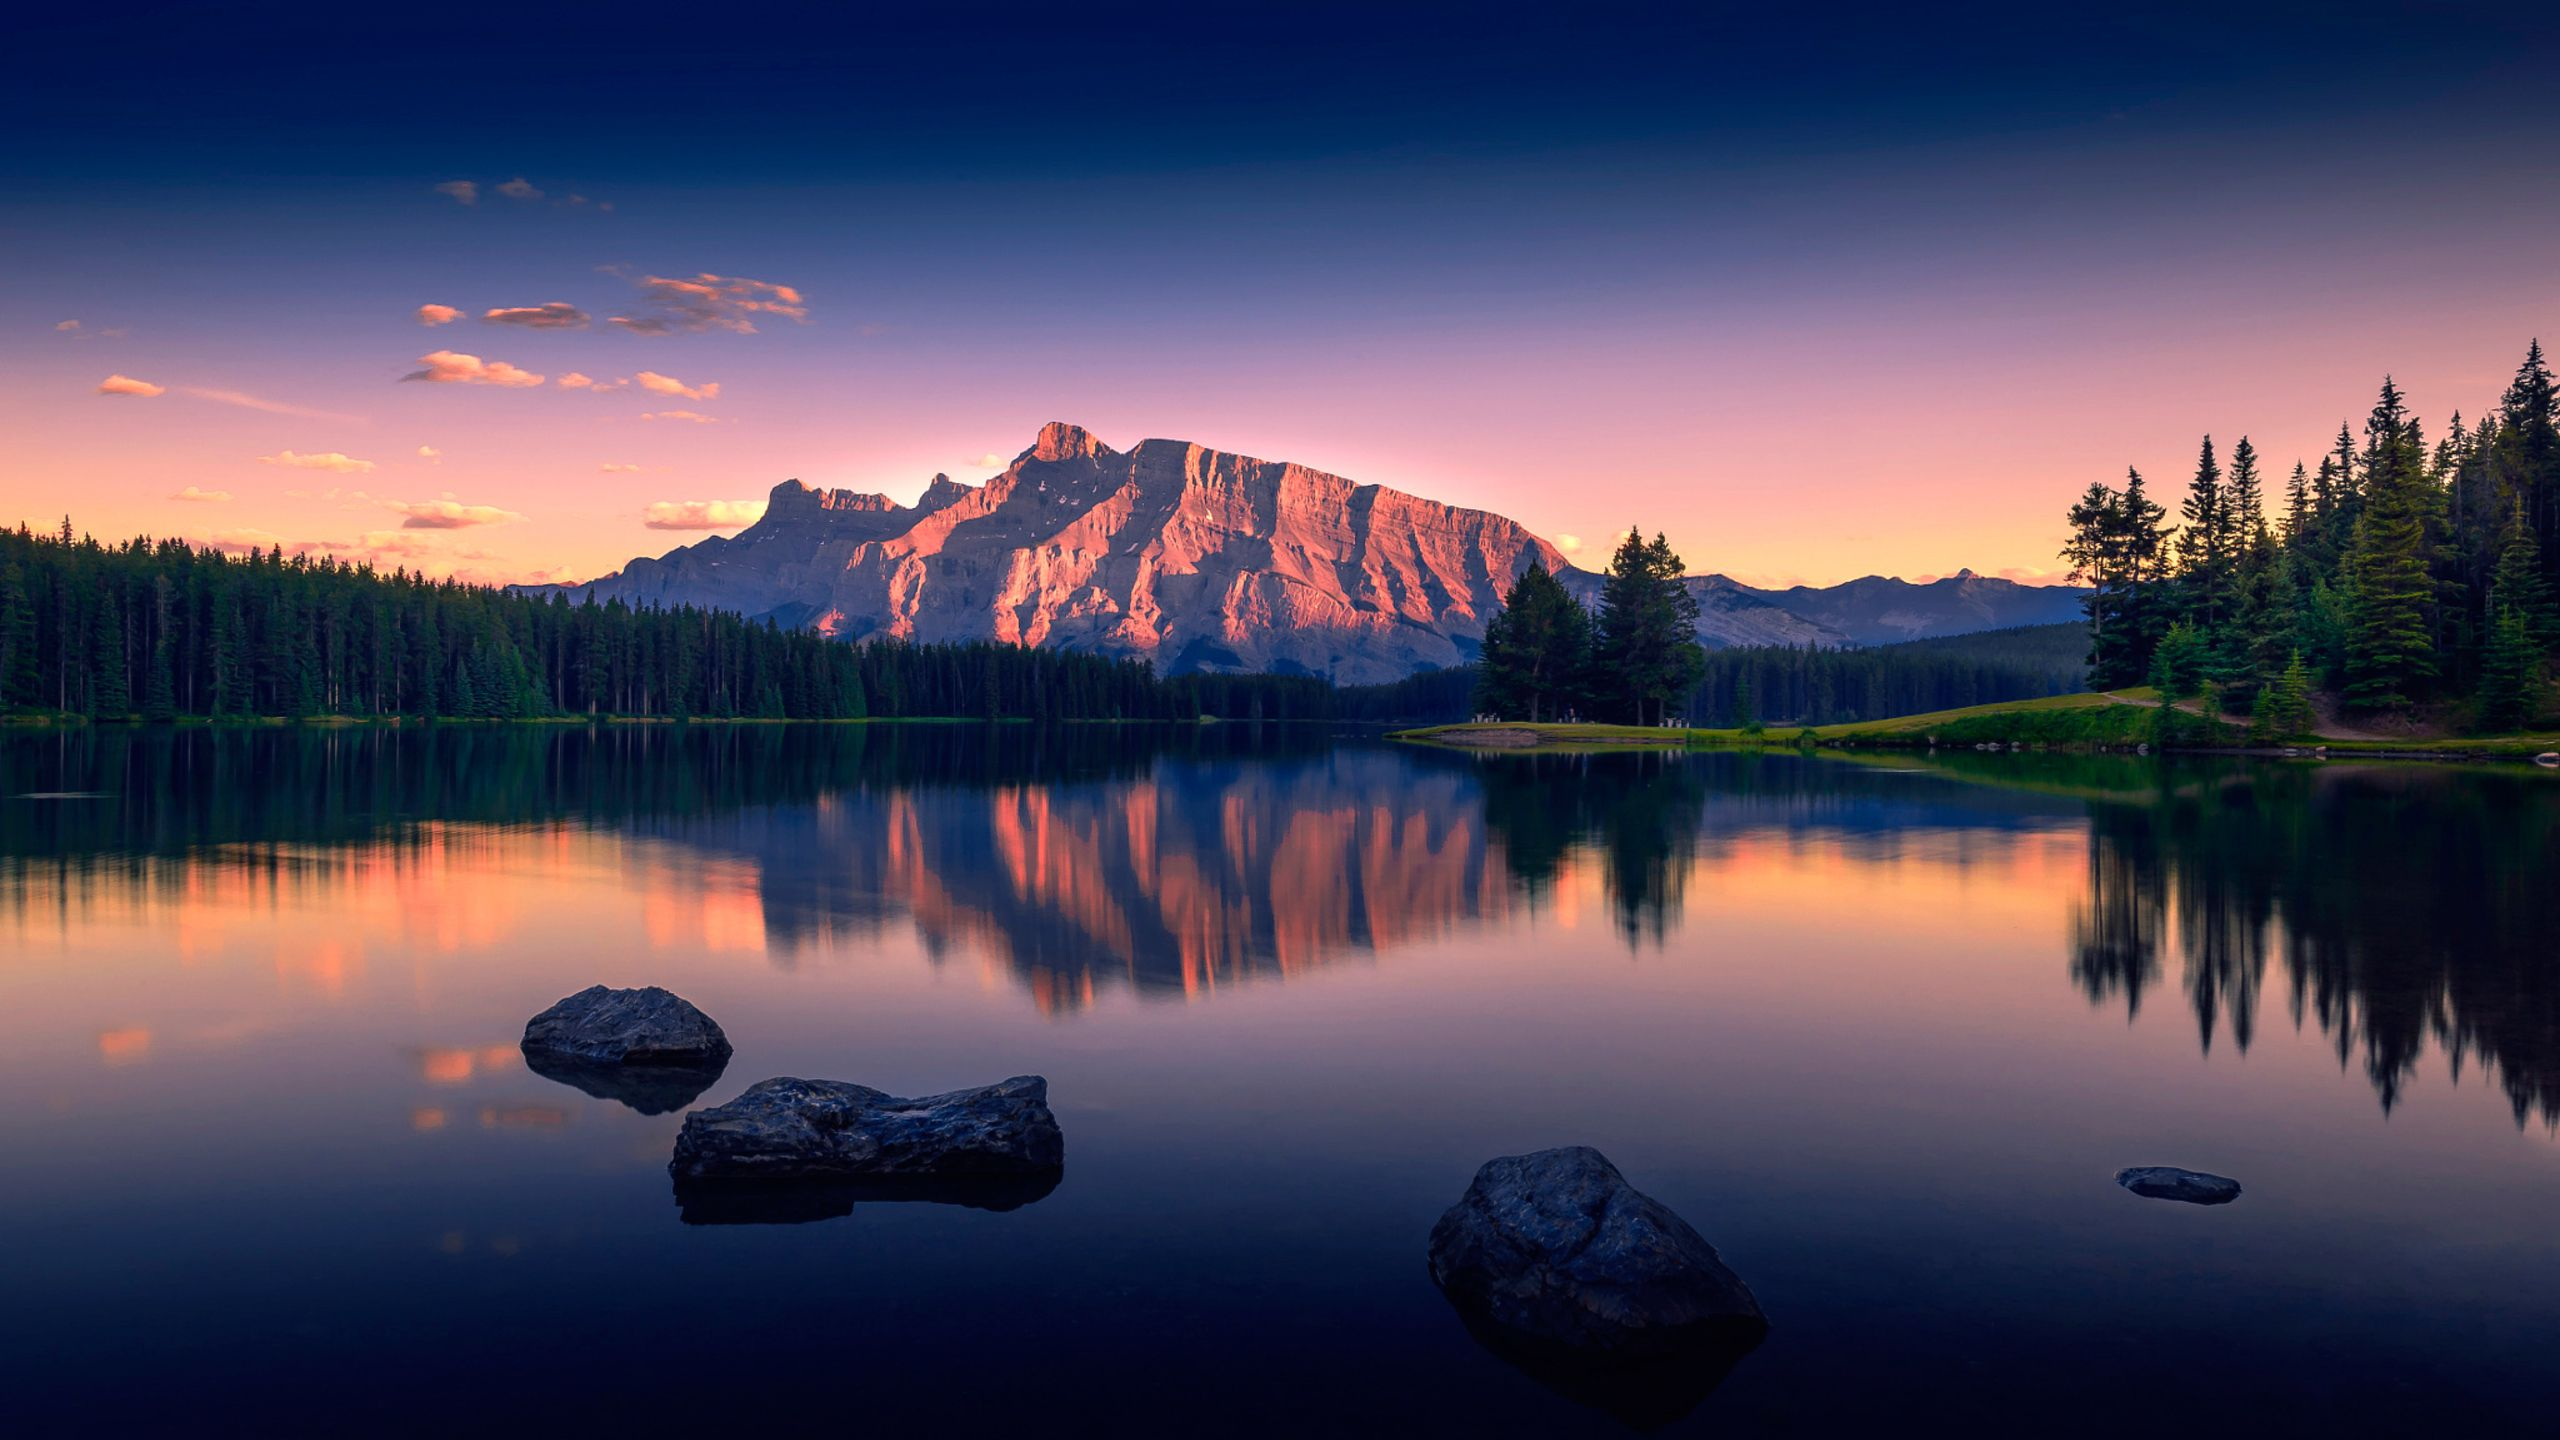 Cool Nature Lake 2560 x 1440 Wallpaper   WallpaperAsk 2560x1440